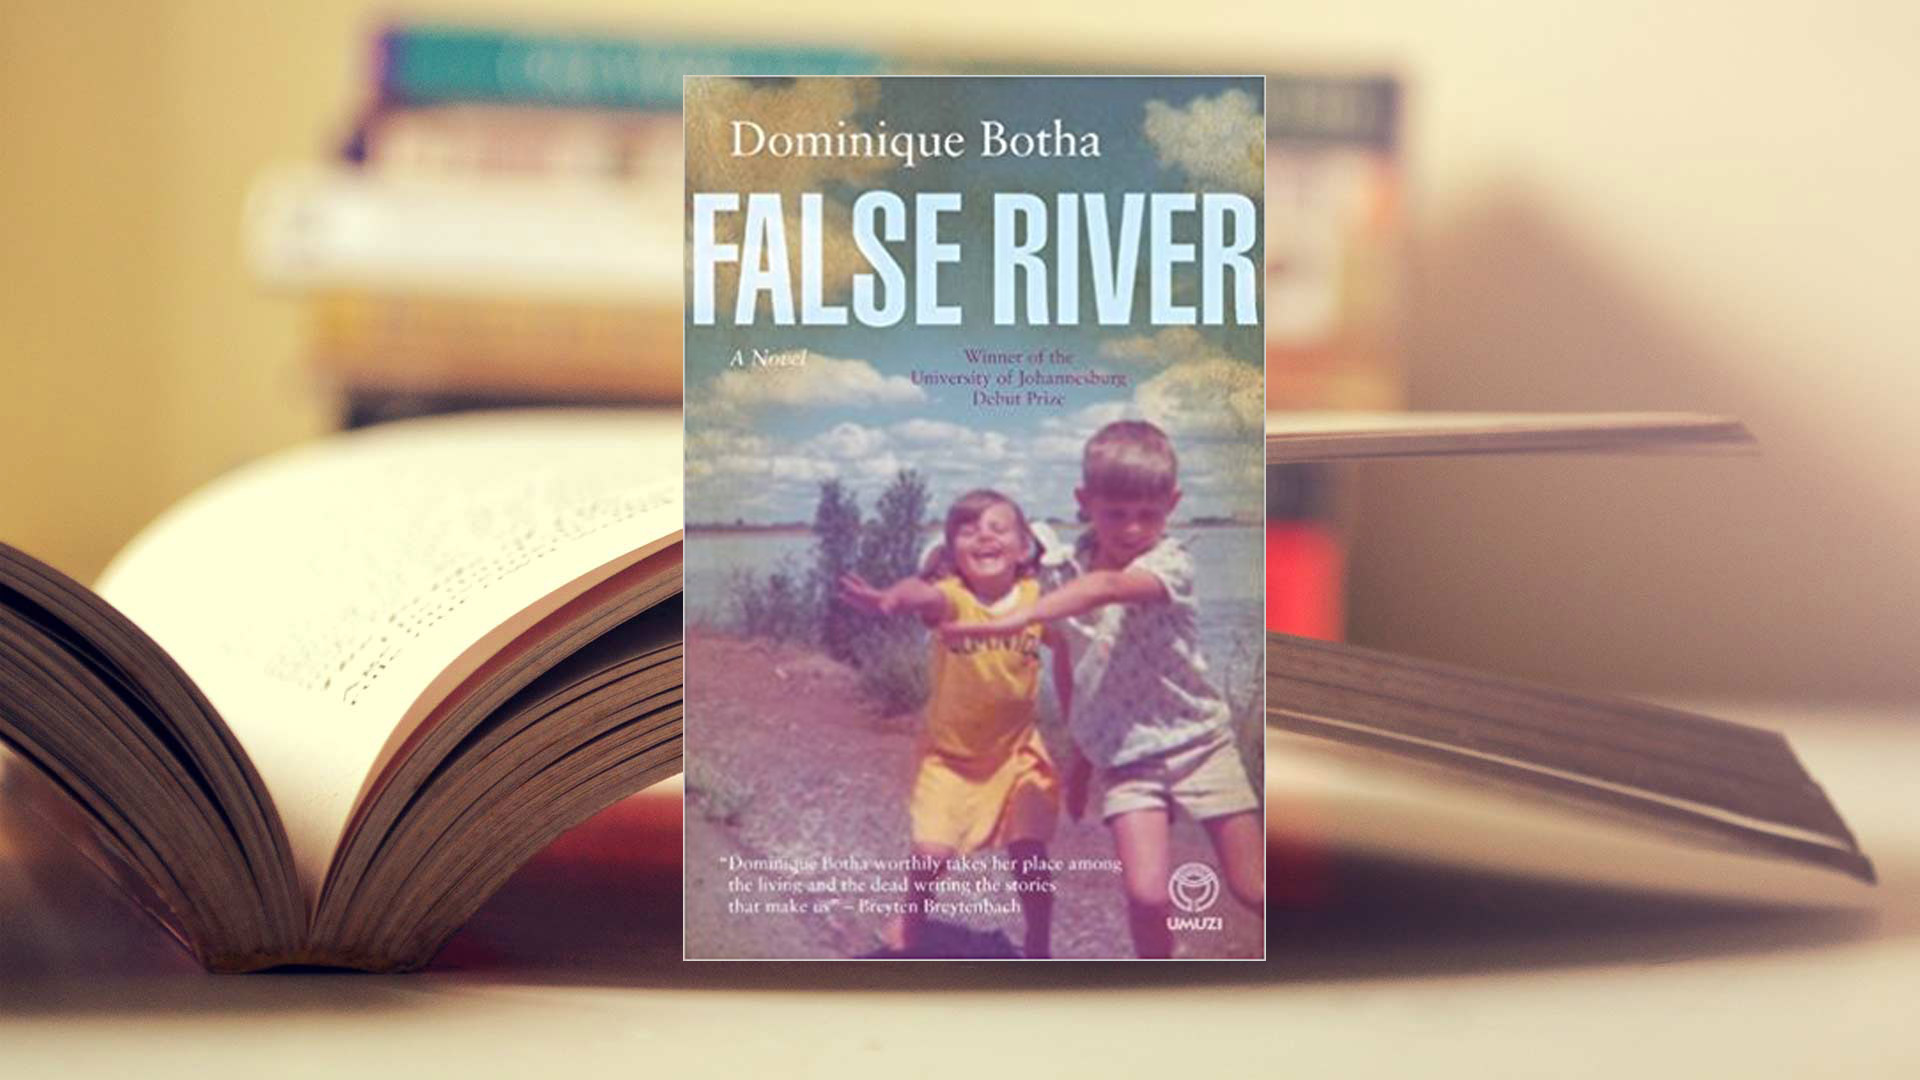 False River by Dominique Botha